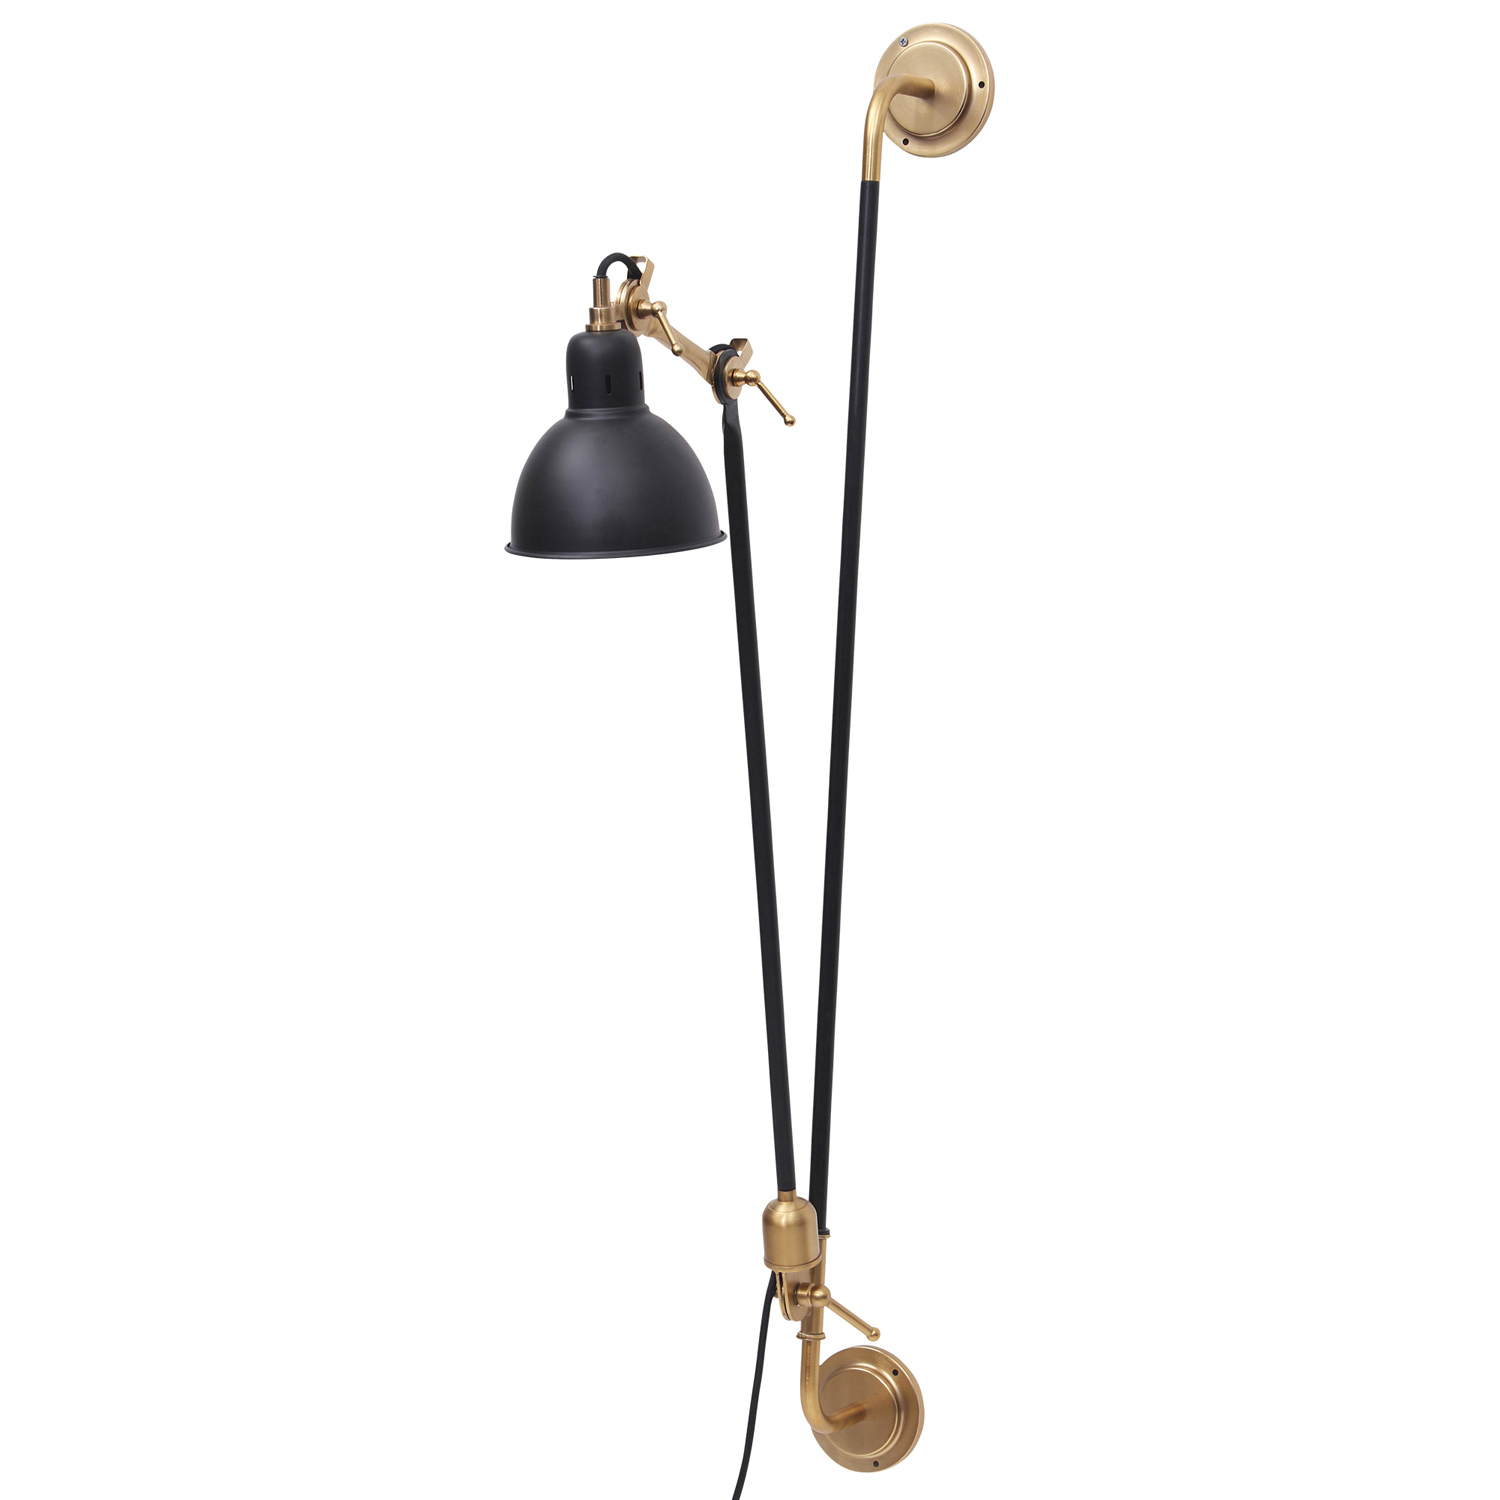 Ren-Wil Bristo Sconce Lighting - Gold/Black